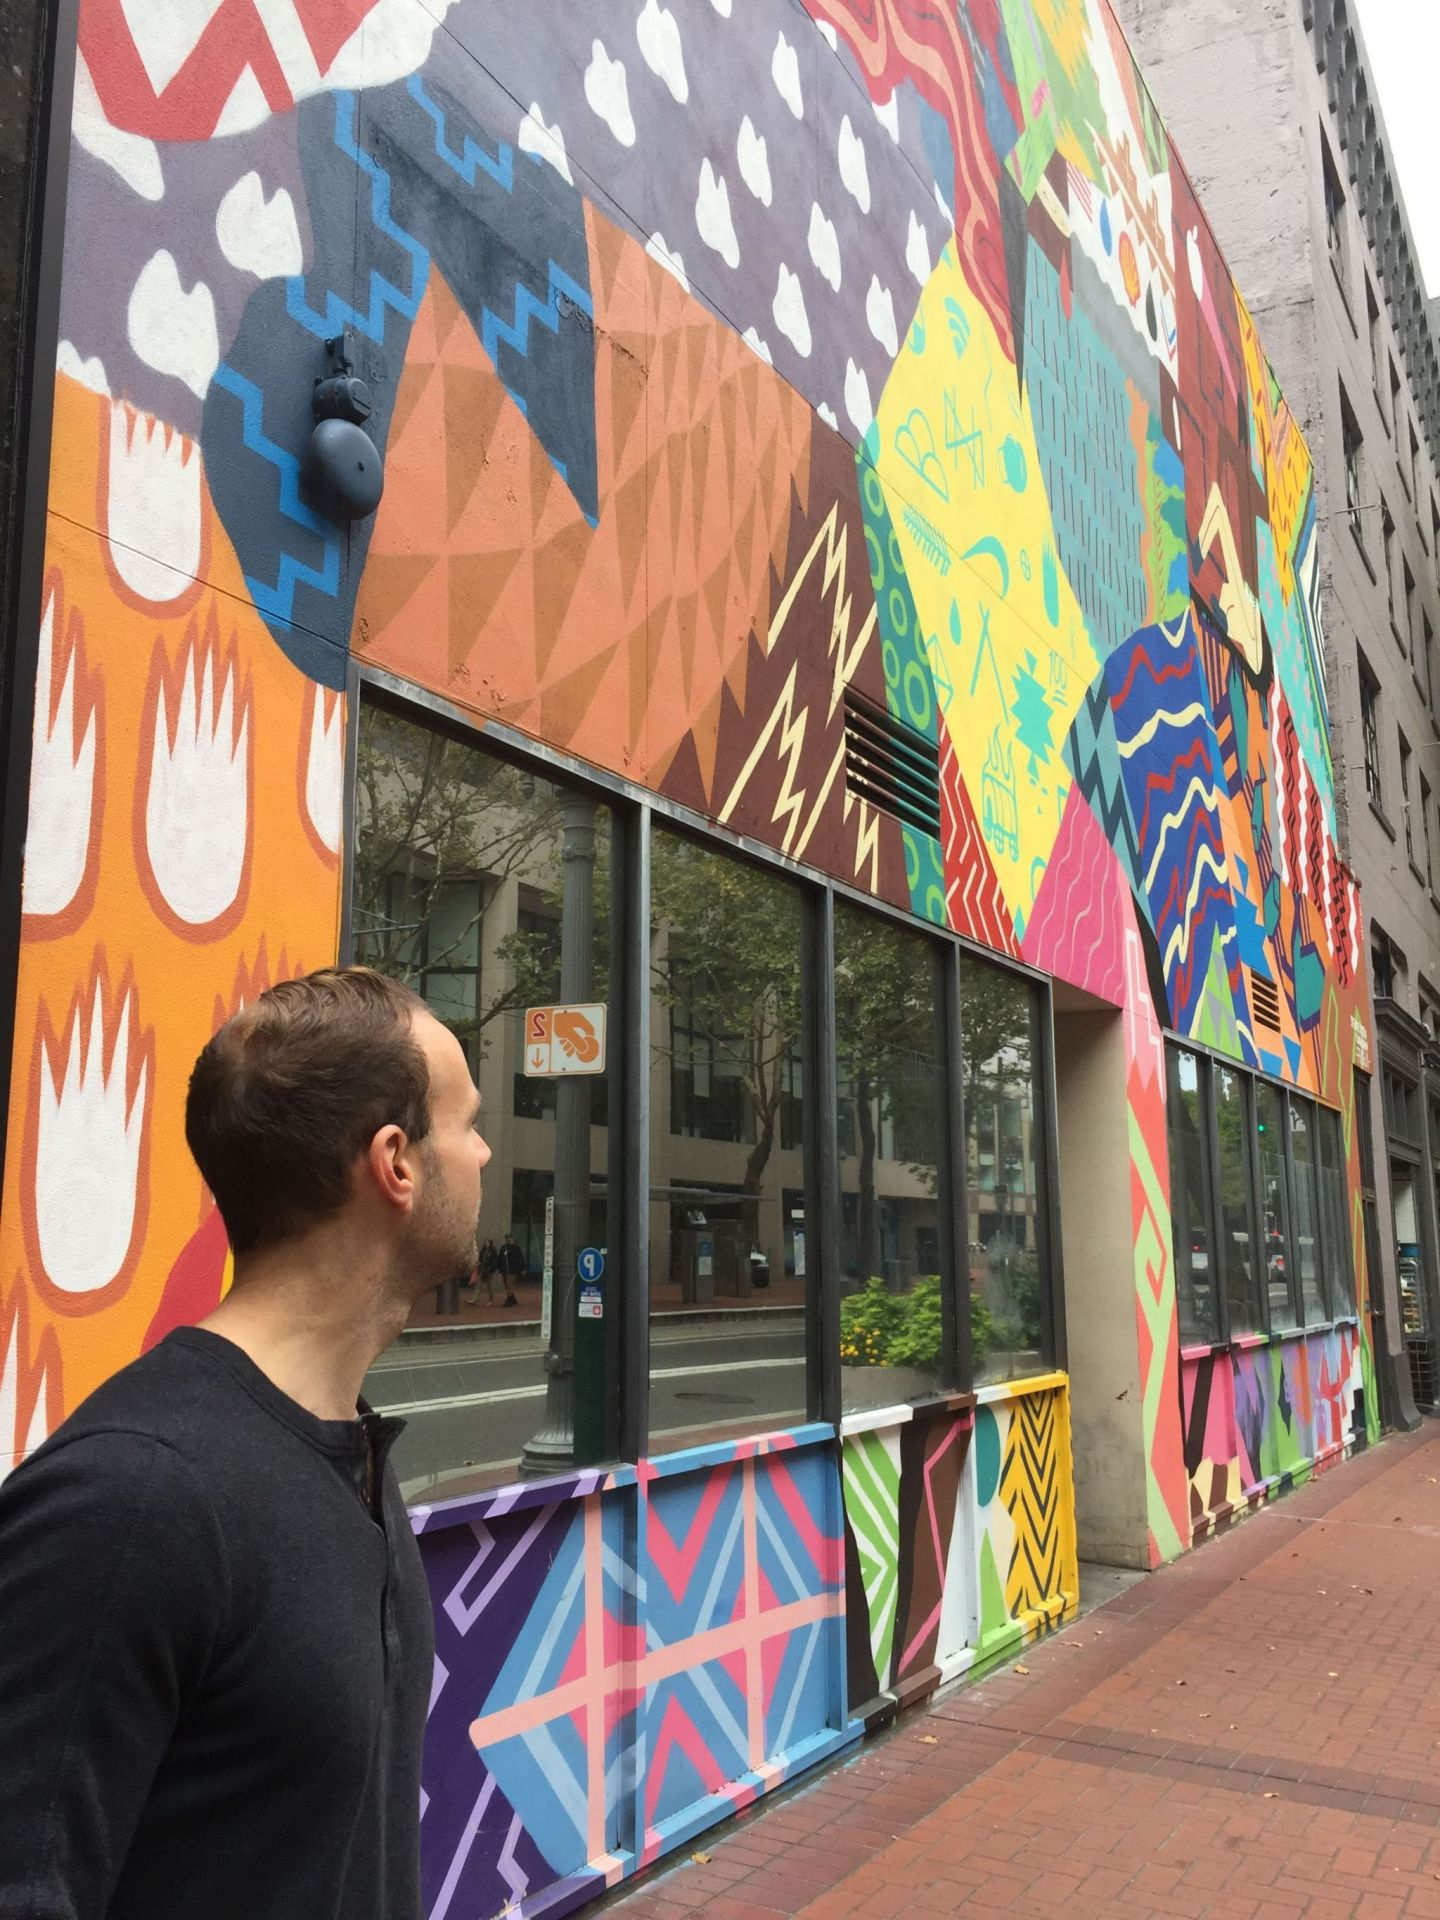 Colourful mural in Portland, Oregon